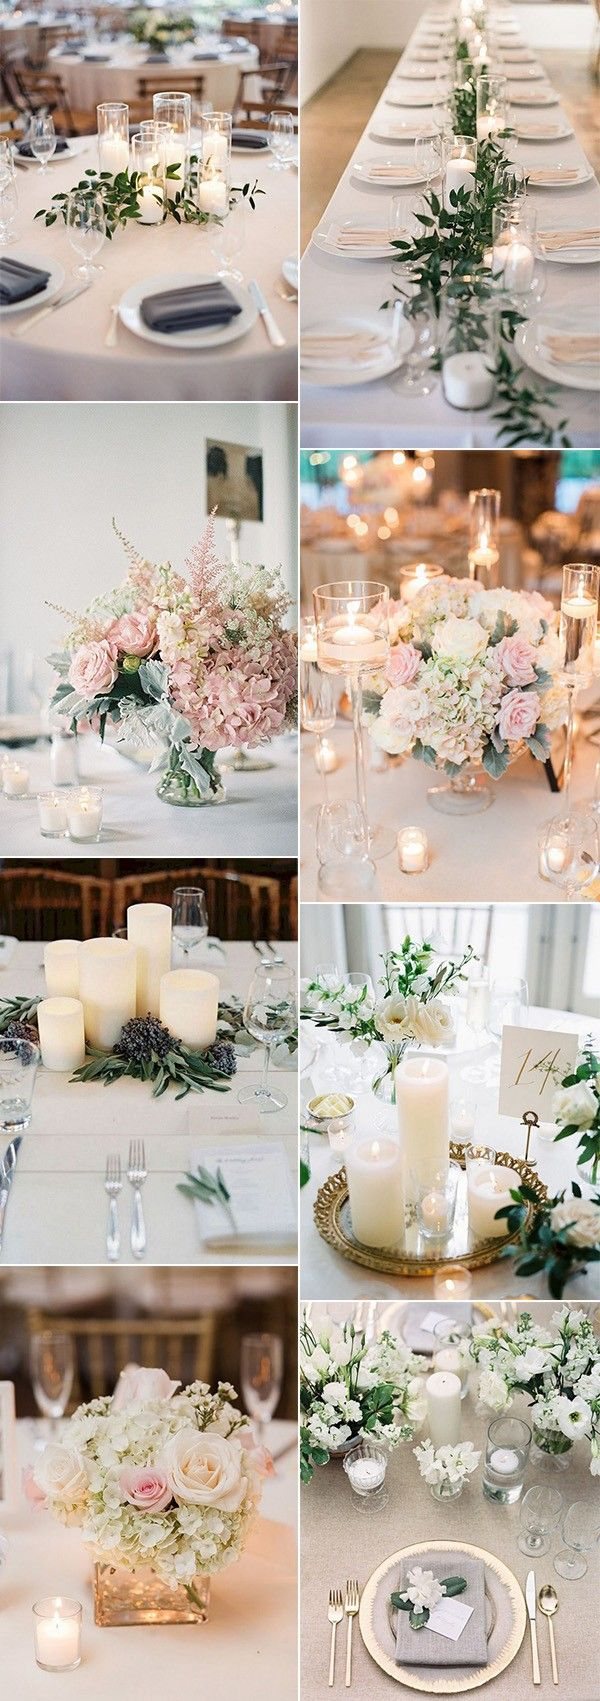 Wedding reception wedding decorations 2018   Elegant Wedding Centerpieces with Candles for  Trends